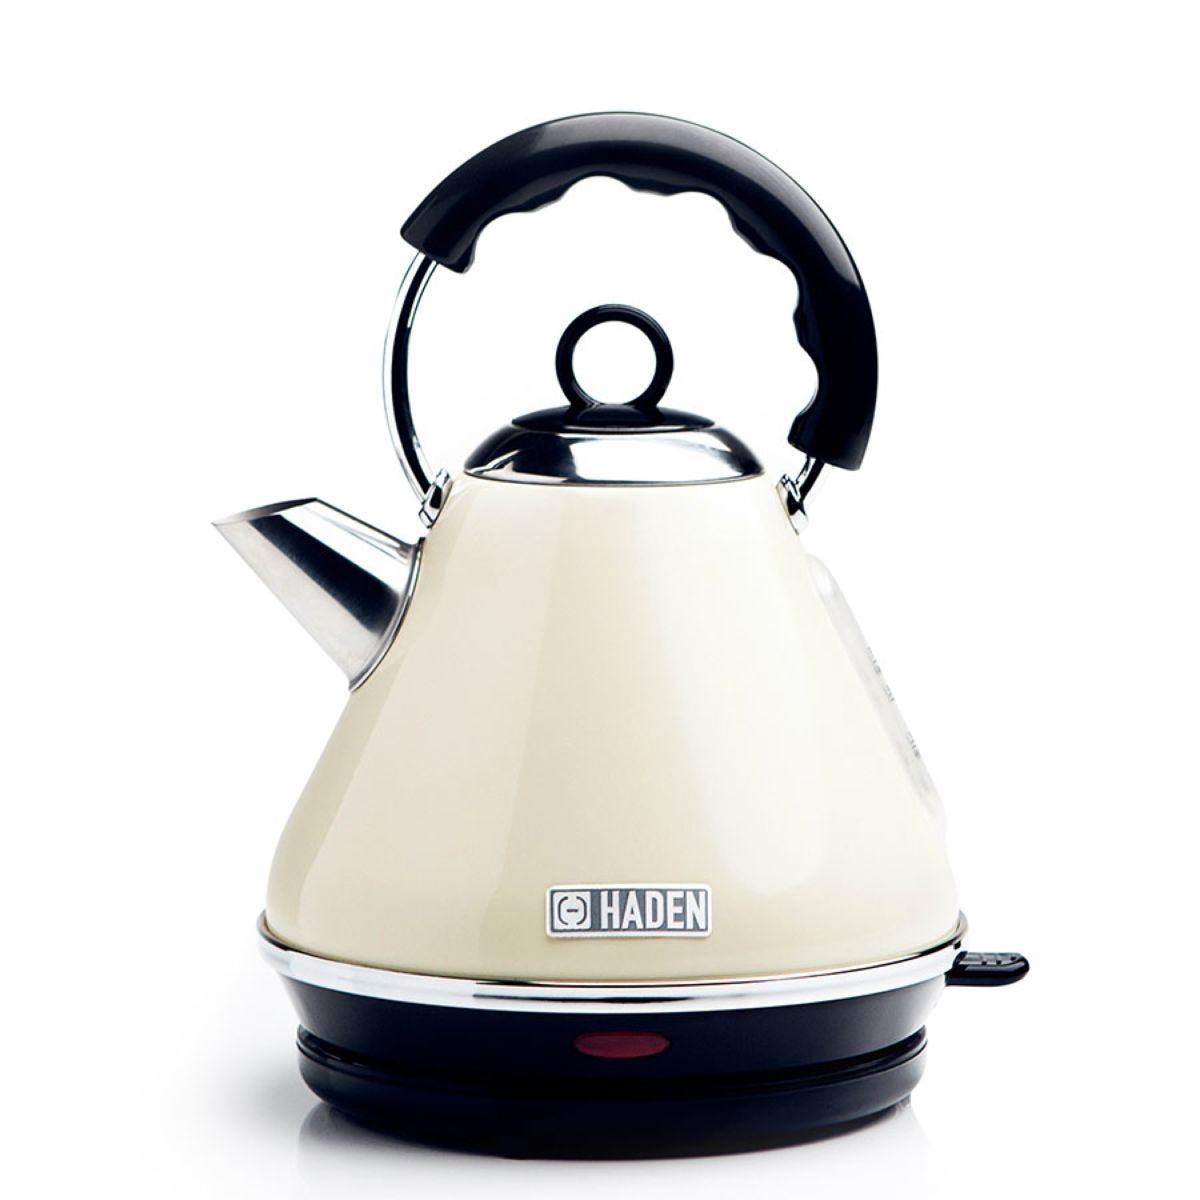 Boston Black 1.7 litre Kettle